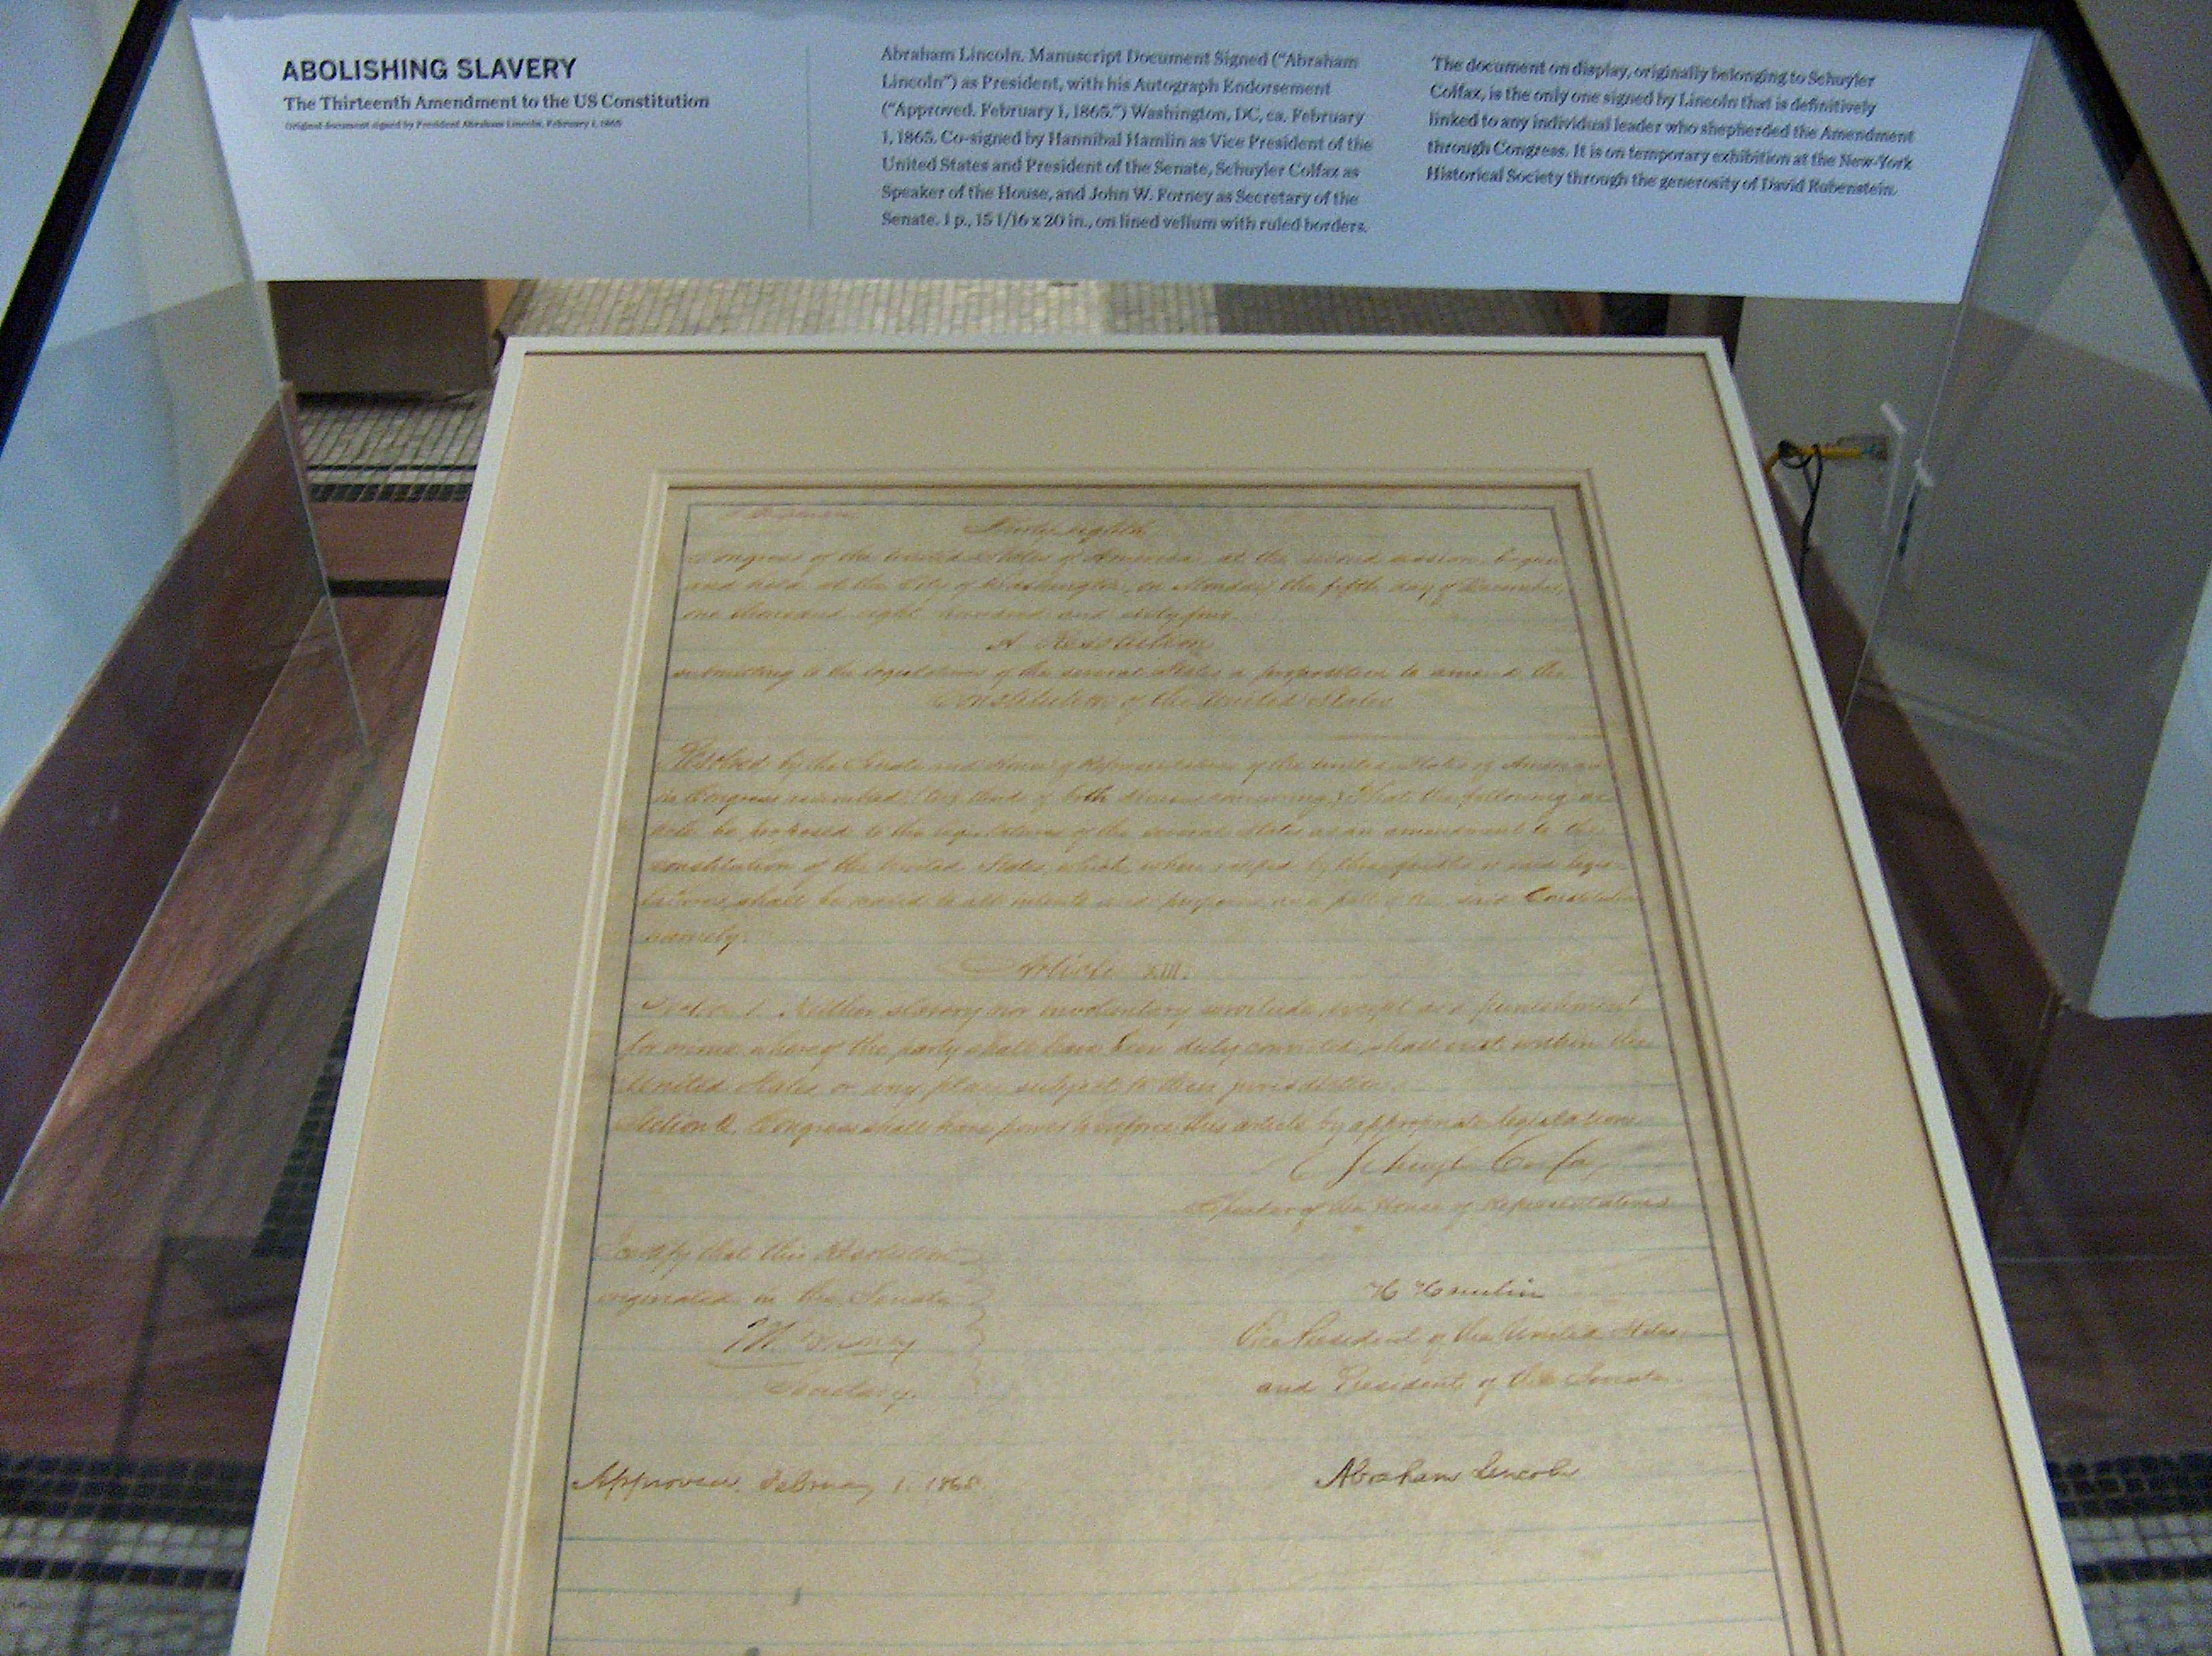 The rare handwritten copy of the Thirteenth Amendment to the Constitution signed by Abraham Lincoln.